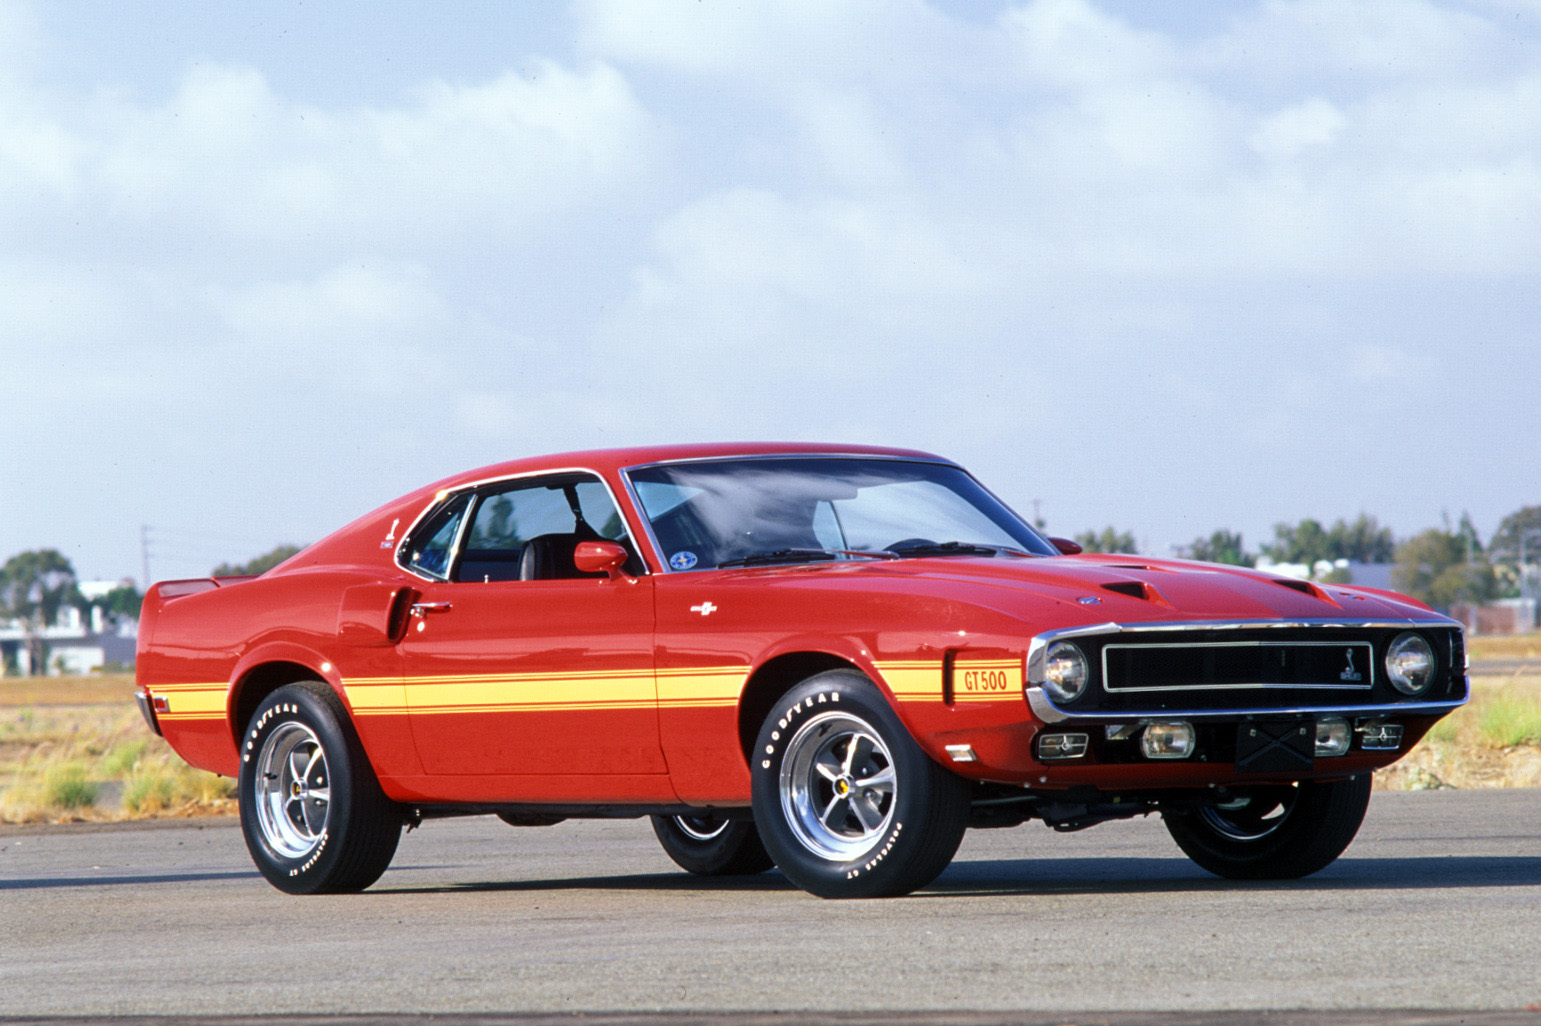 Ford Mustang Photo Gallery: 1969 Shelby GT500 | Shnack.com